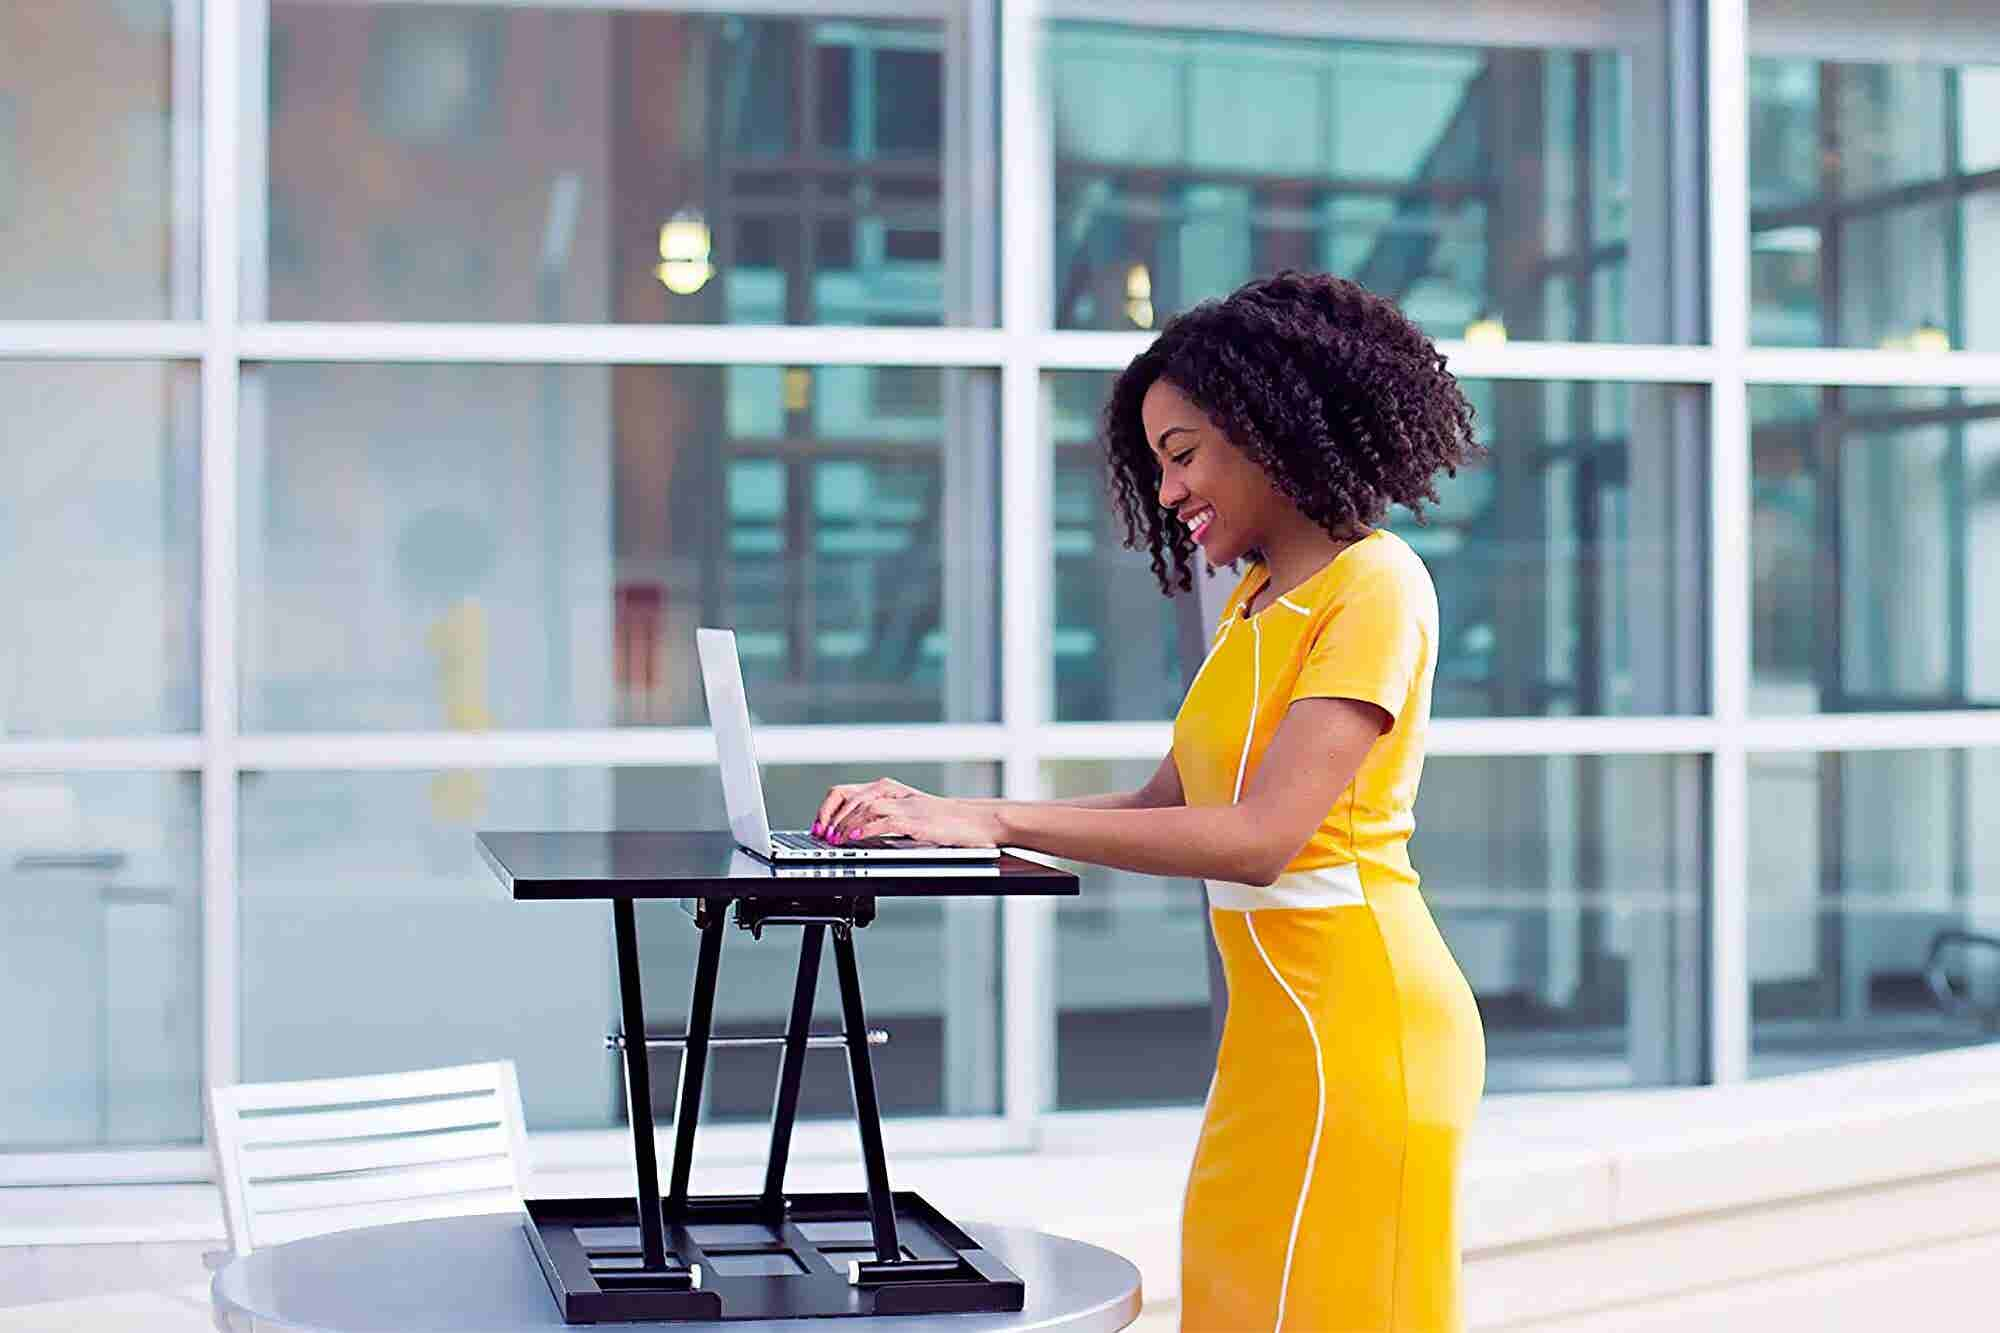 Tired of Sitting at Work? Try These 5 Top-Rated Standing Desks.